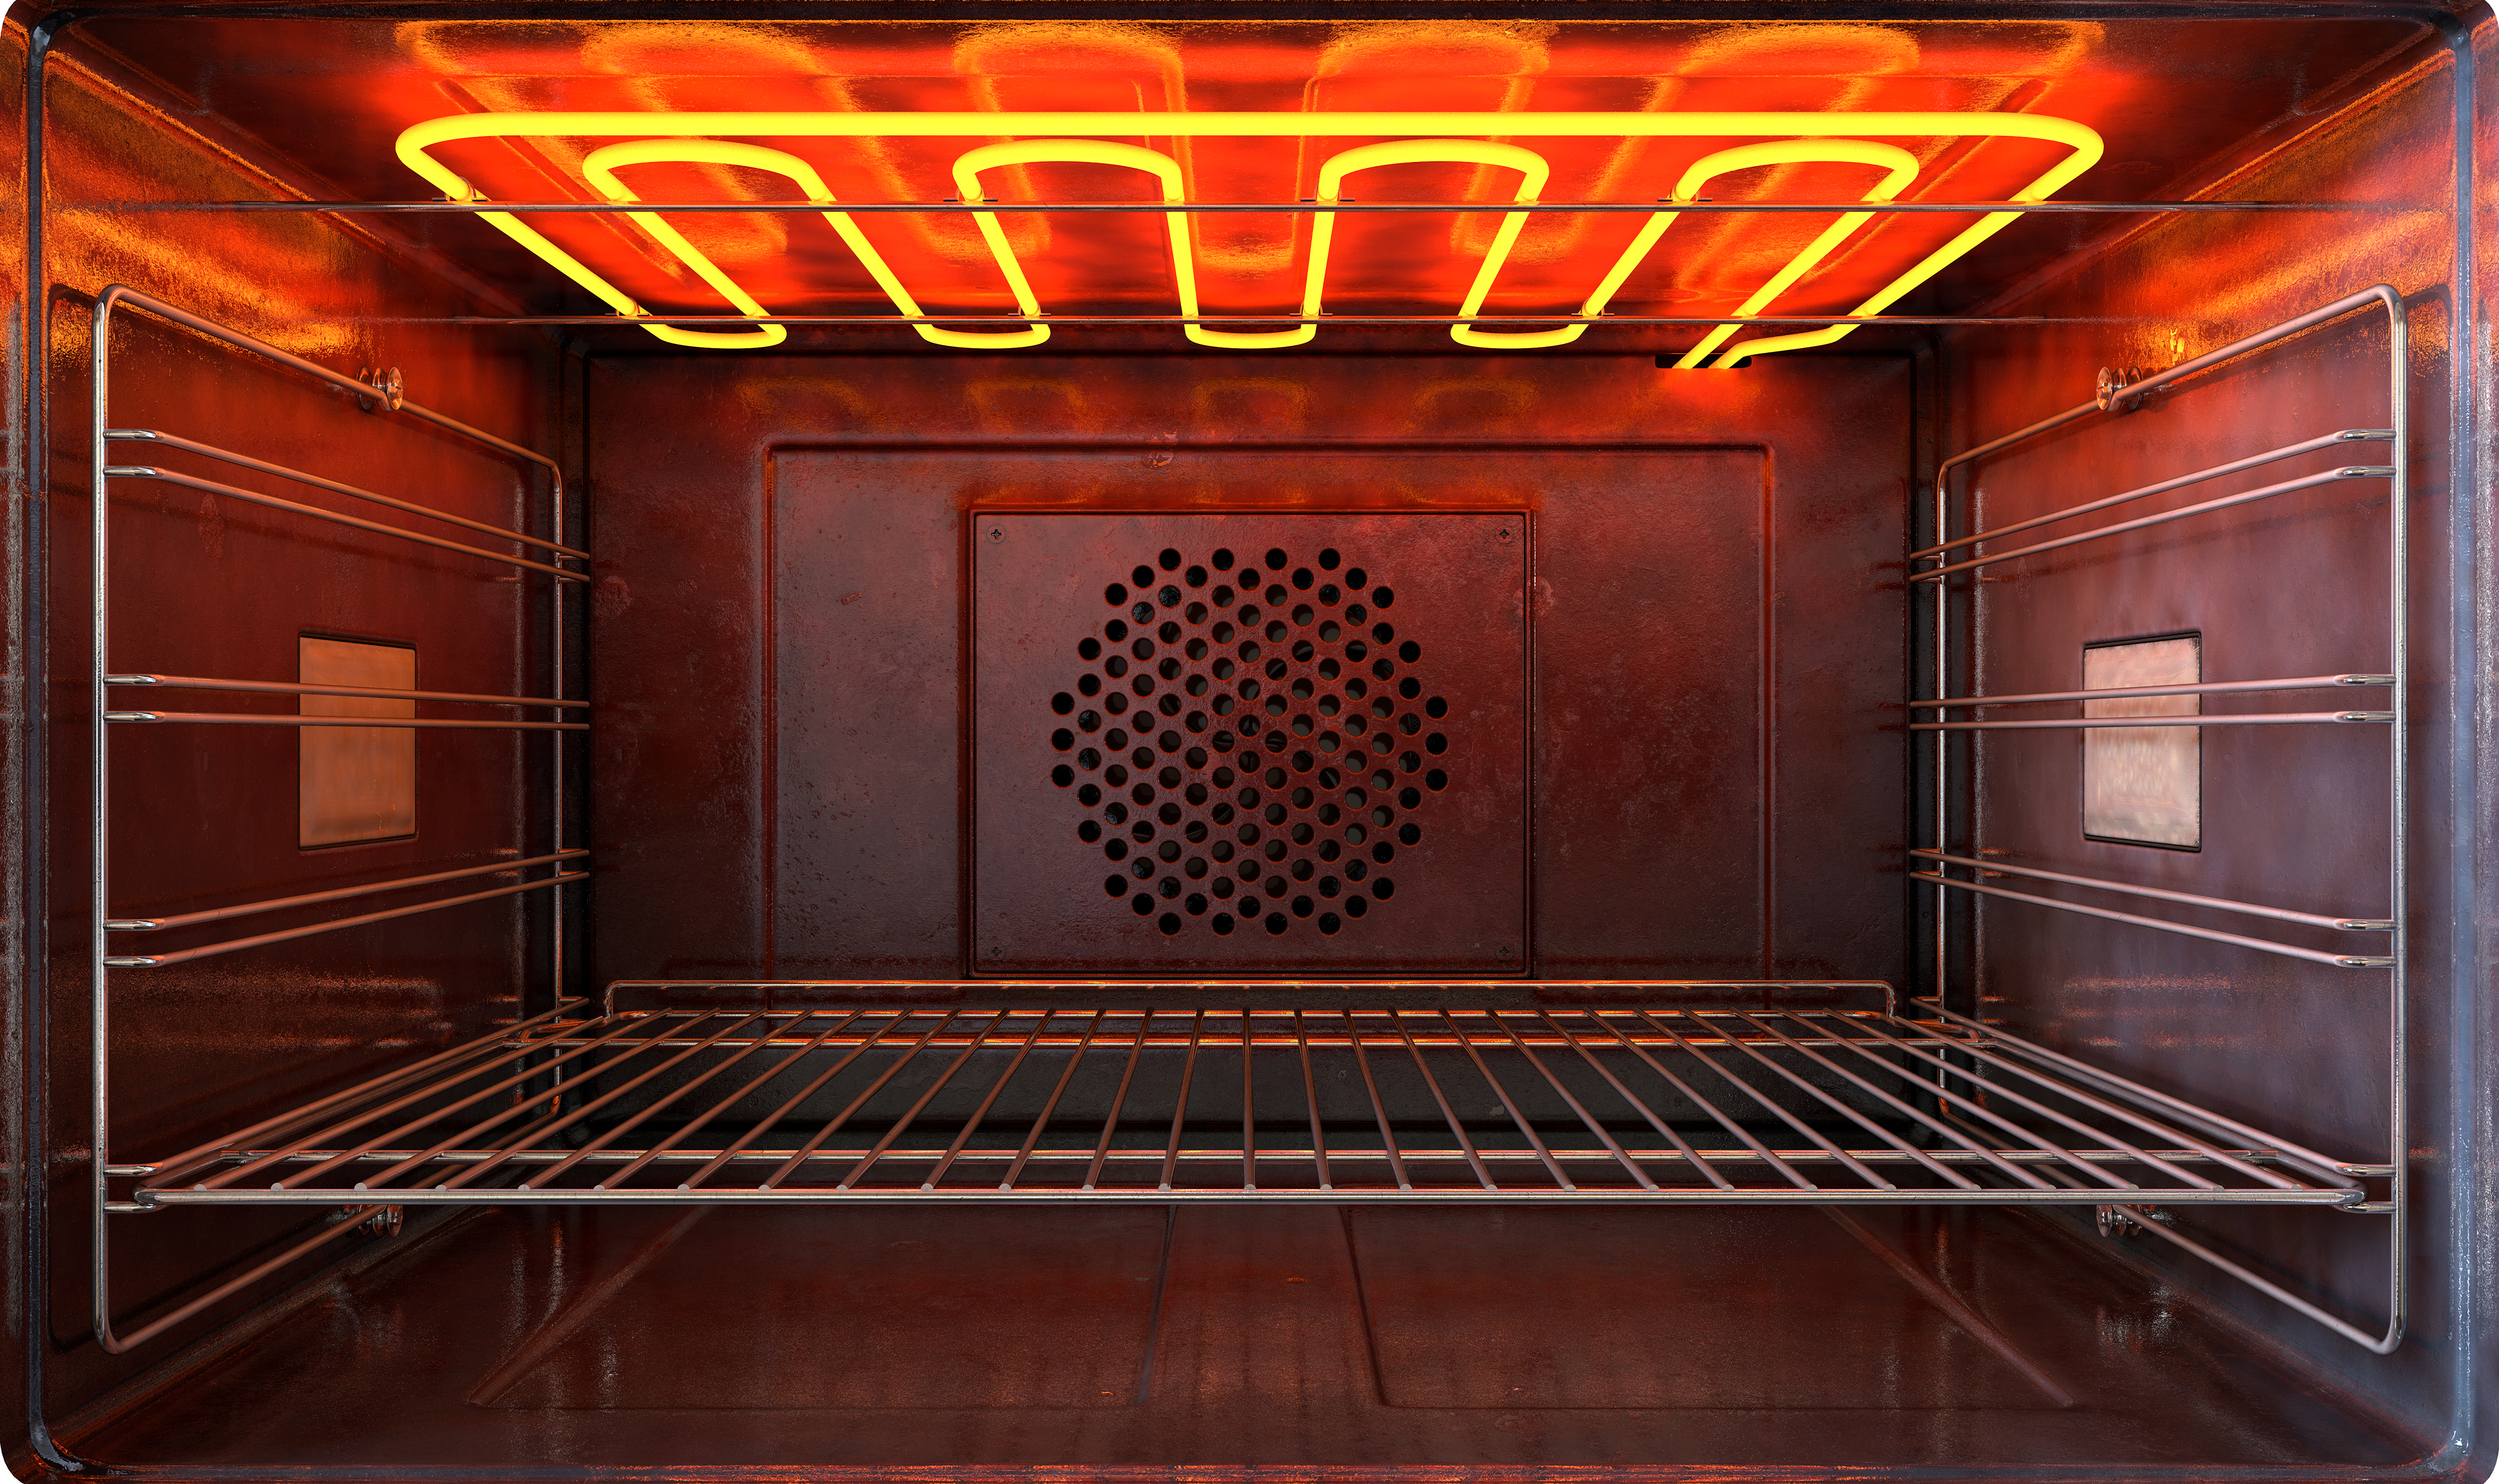 The interior of an empty oven with the broiler's heating element turned on and glowing red